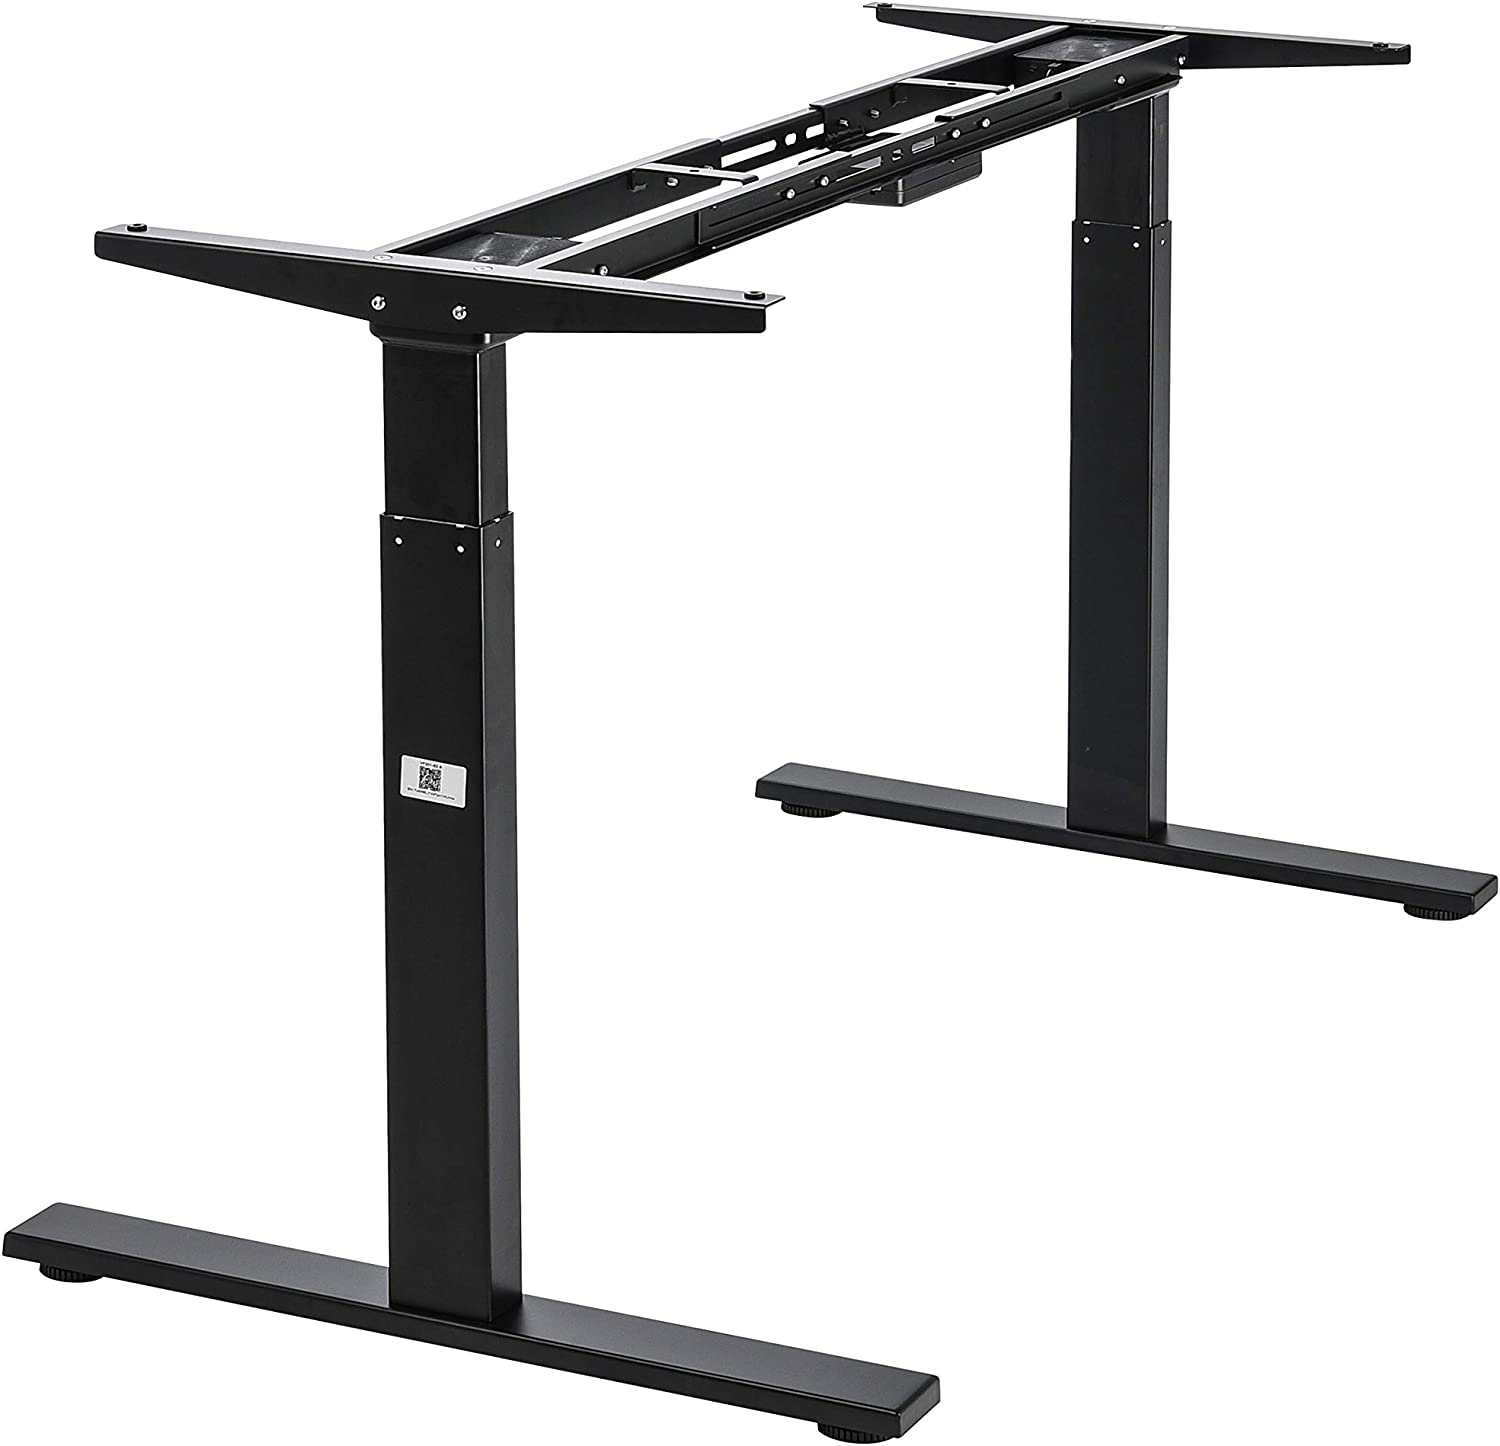 VWINDESK Gifts VF201 Dual Motor Electric Stand 40% OFF Cheap Sale Sit Adjustable Height U